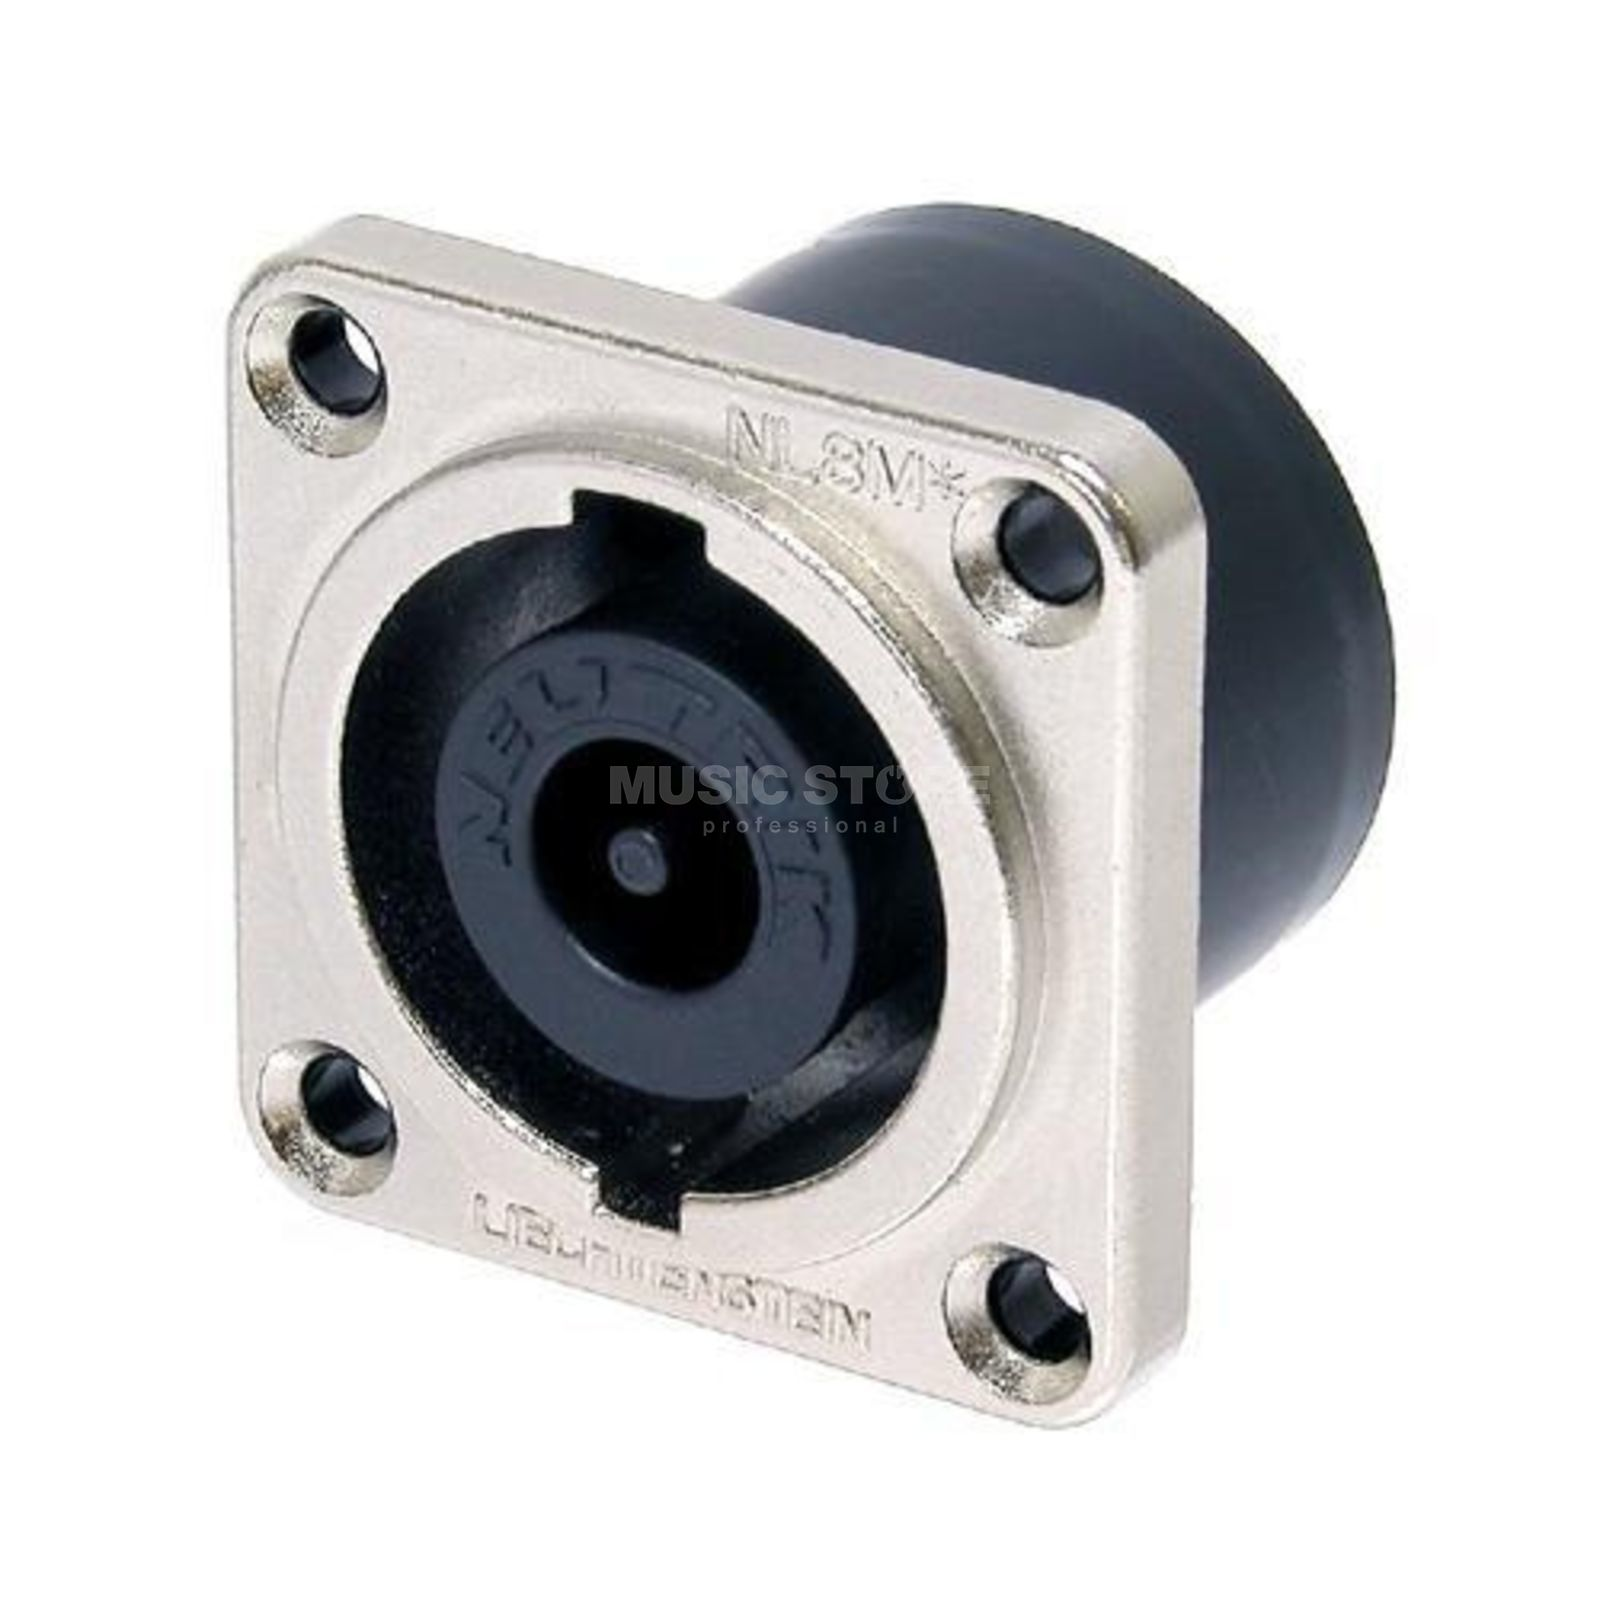 Neutrik NL8MD-V Speakon Chassis Connector 8-pole, G-Size, Nickel Imagem do produto